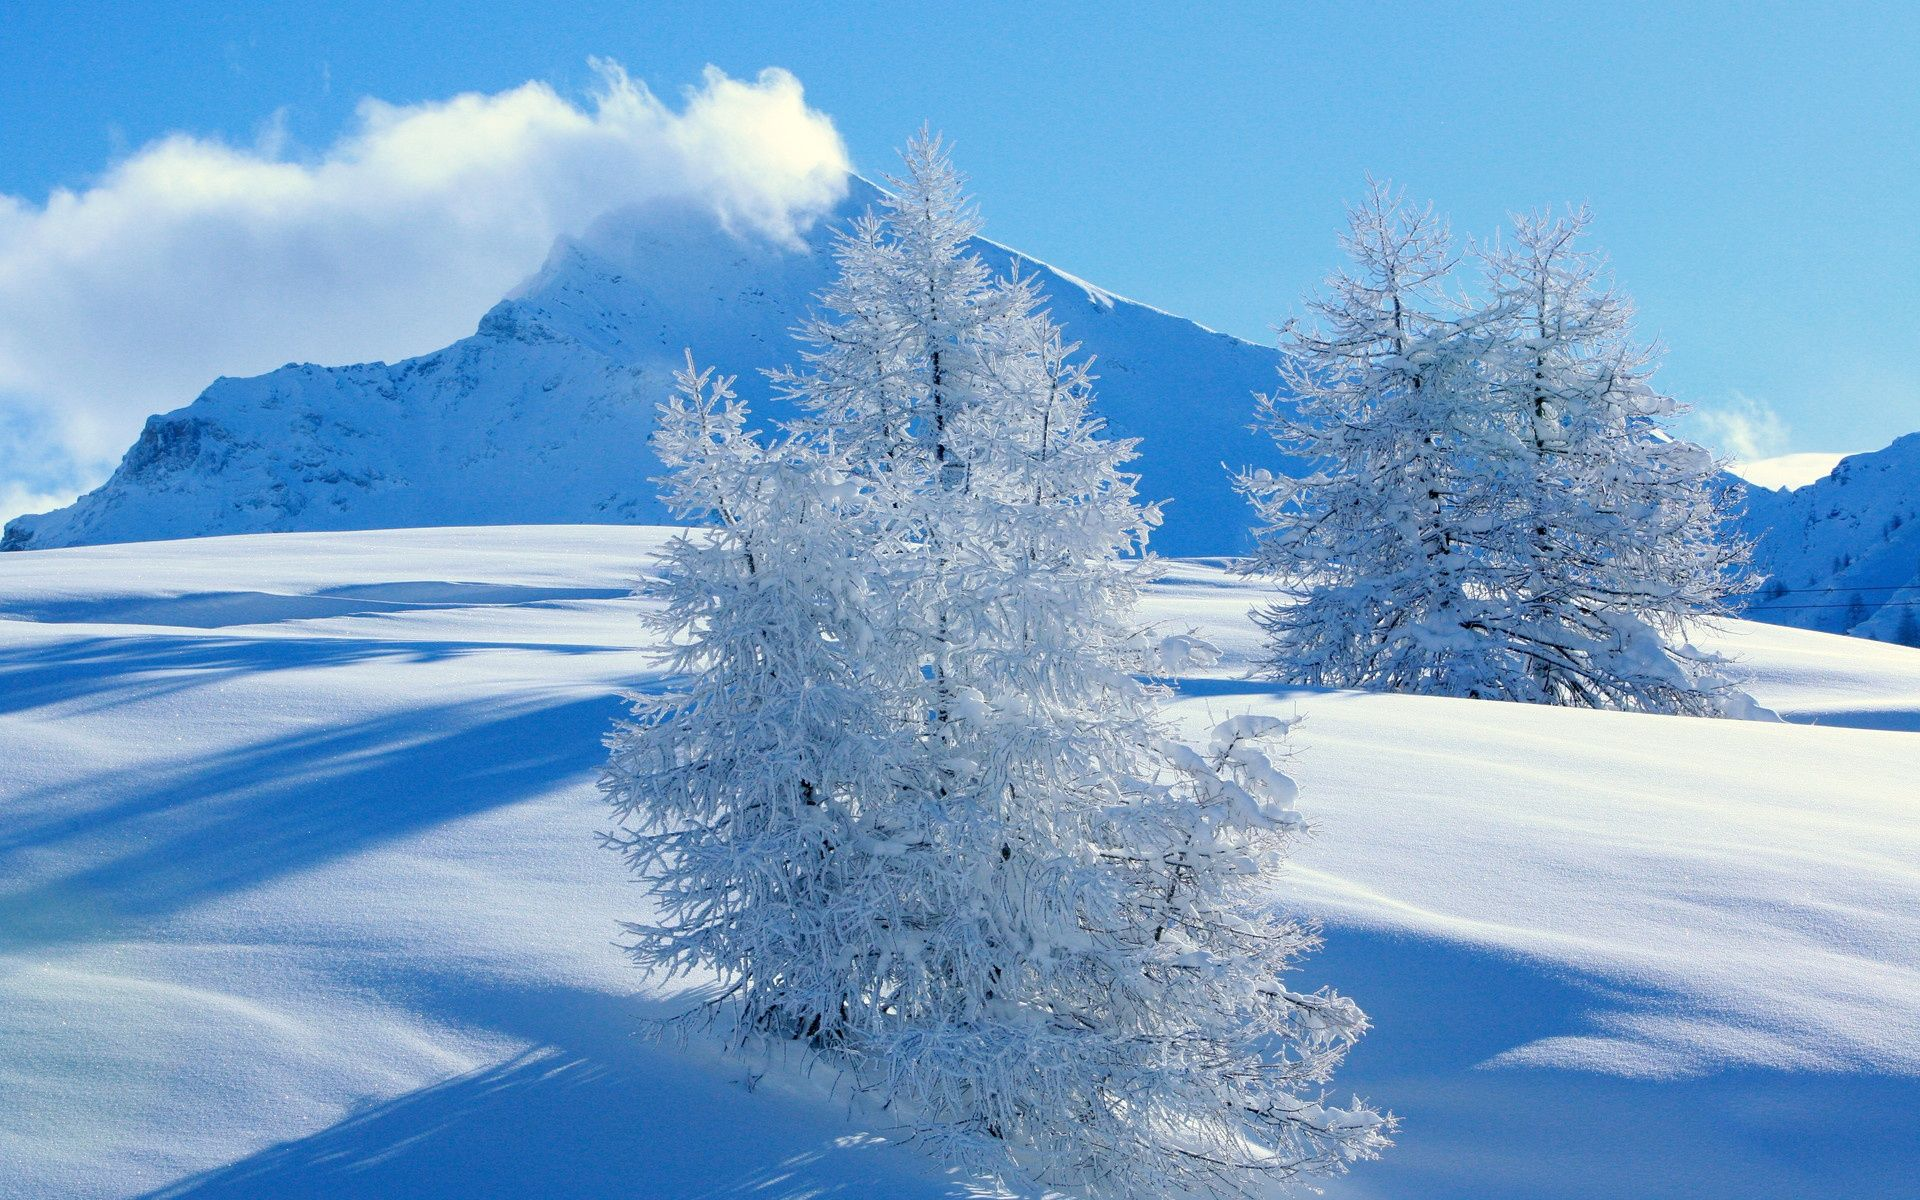 Images Or Snow Snow Landscape Wallpapers Pictures Photos Images Snowfall Wallpaper Landscape Wallpaper Winter Snow Wallpaper